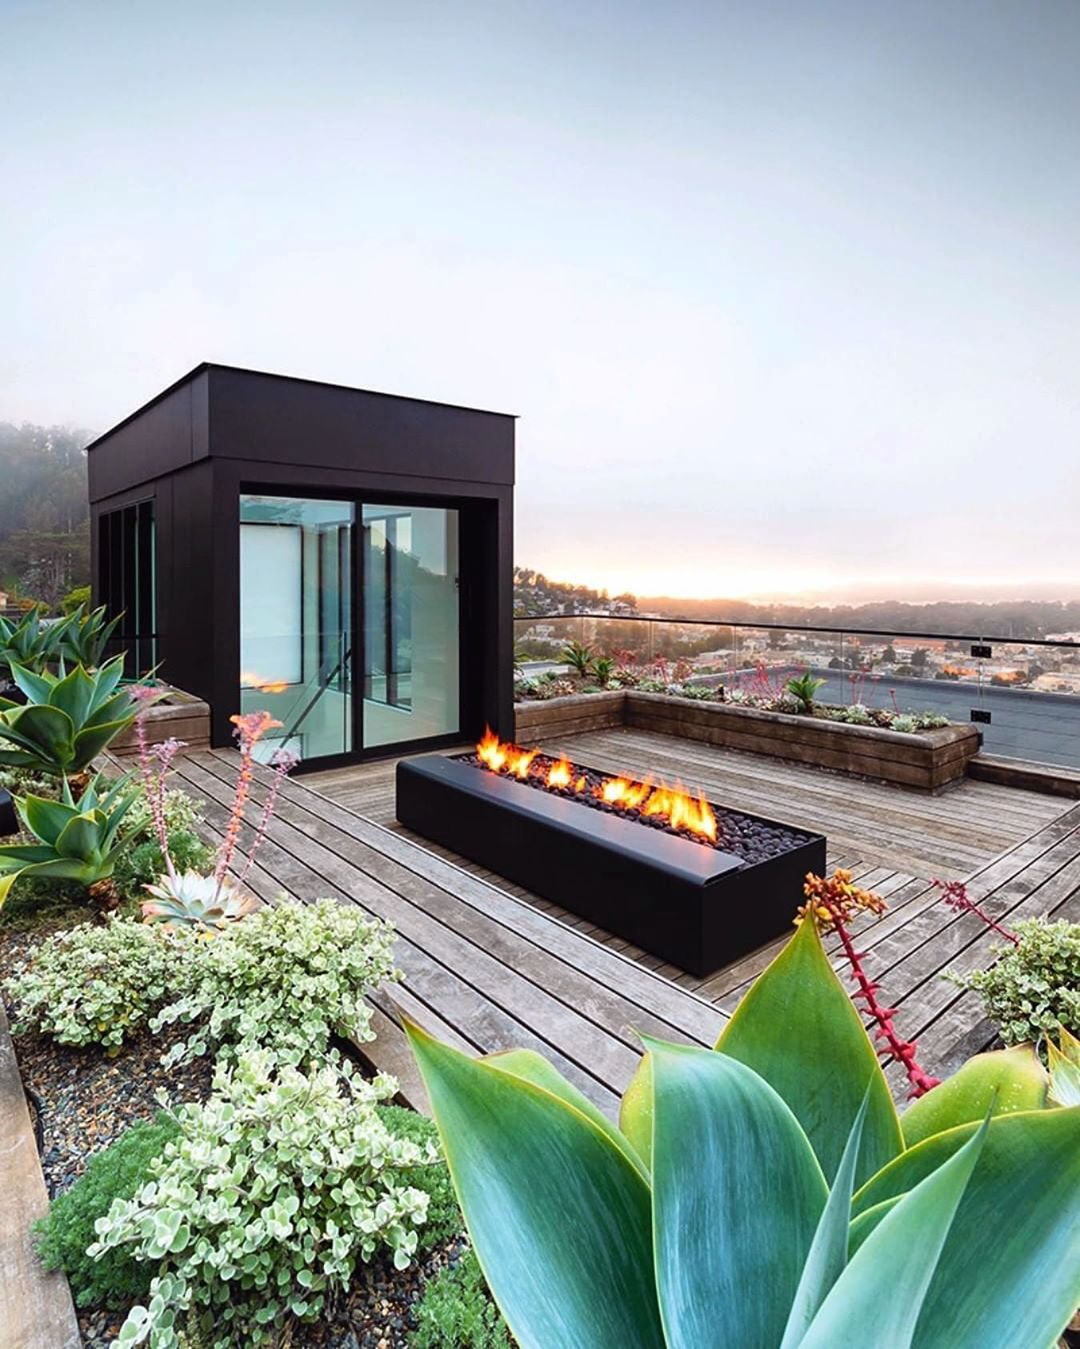 Surfacedesign Inc On Instagram Quintessentially Sf Foggy Summer Sunset From The Roof Terrace Of Our Tank Hill Projec Fire Glass Glass Fire Pit Roof Garden